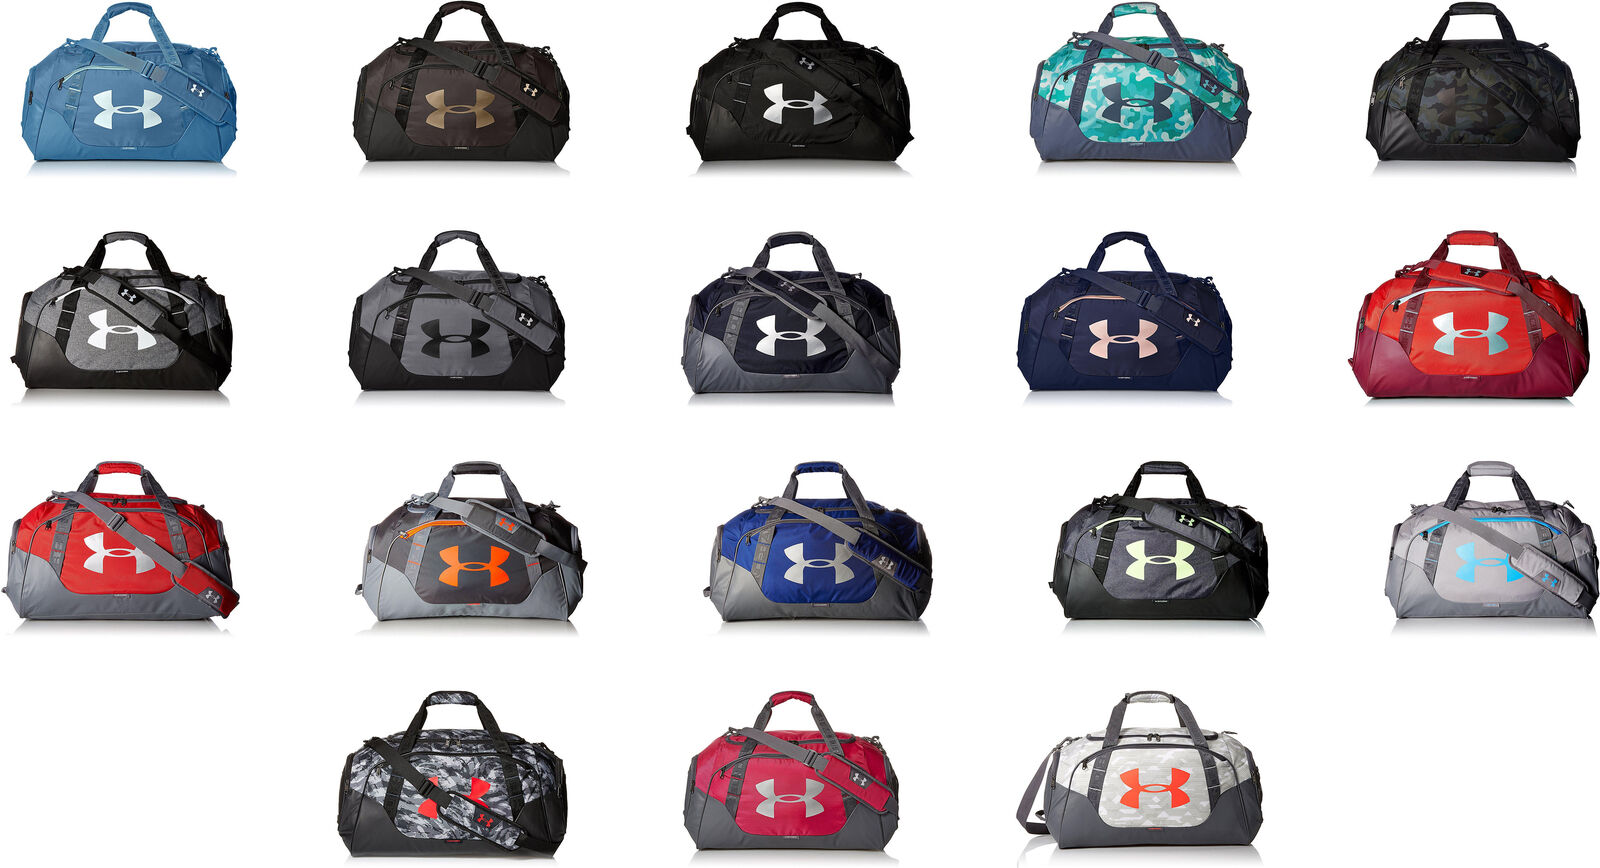 075146701f7b Details about Under Armour Undeniable 3.0 Medium Duffle Bag